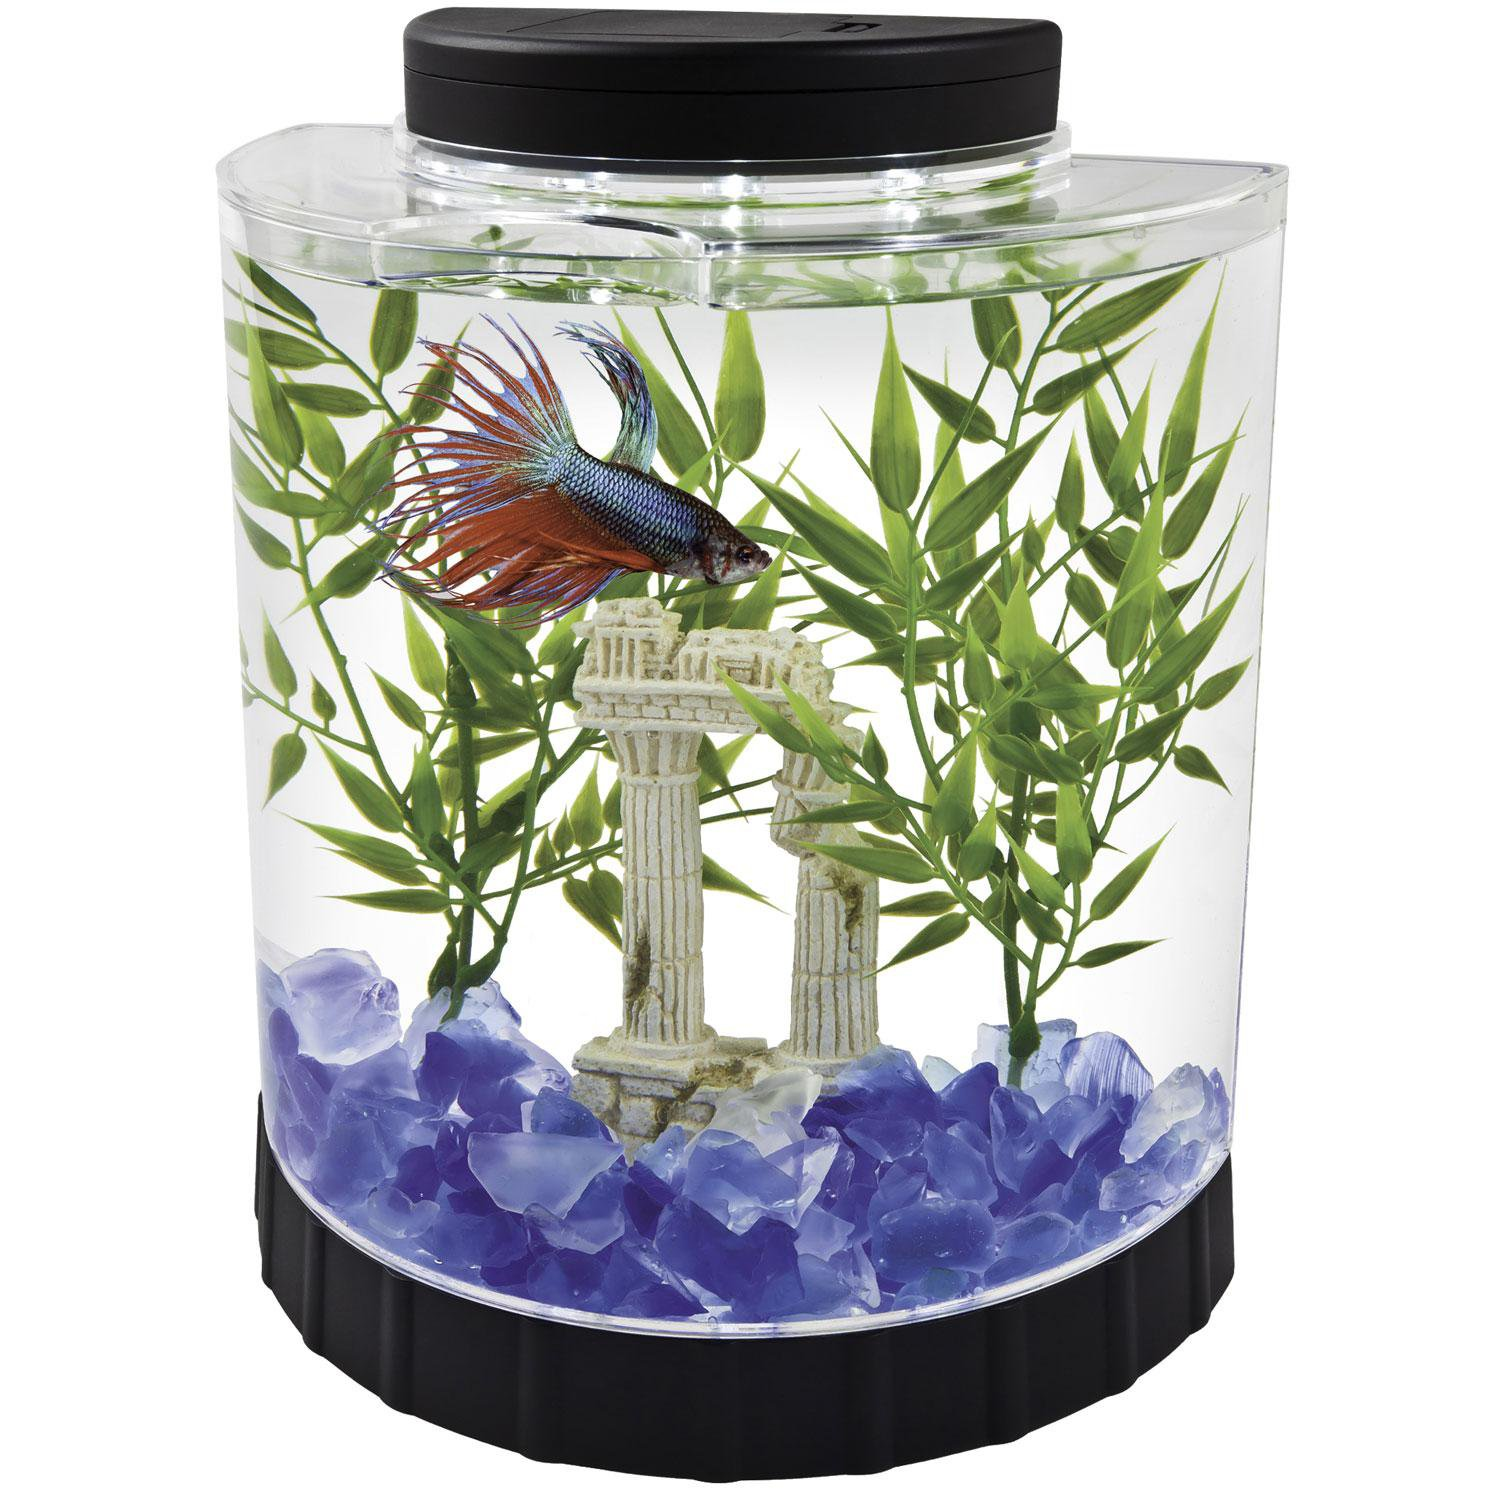 Tetra 1 Gallon LED Half Moon Betta Kit